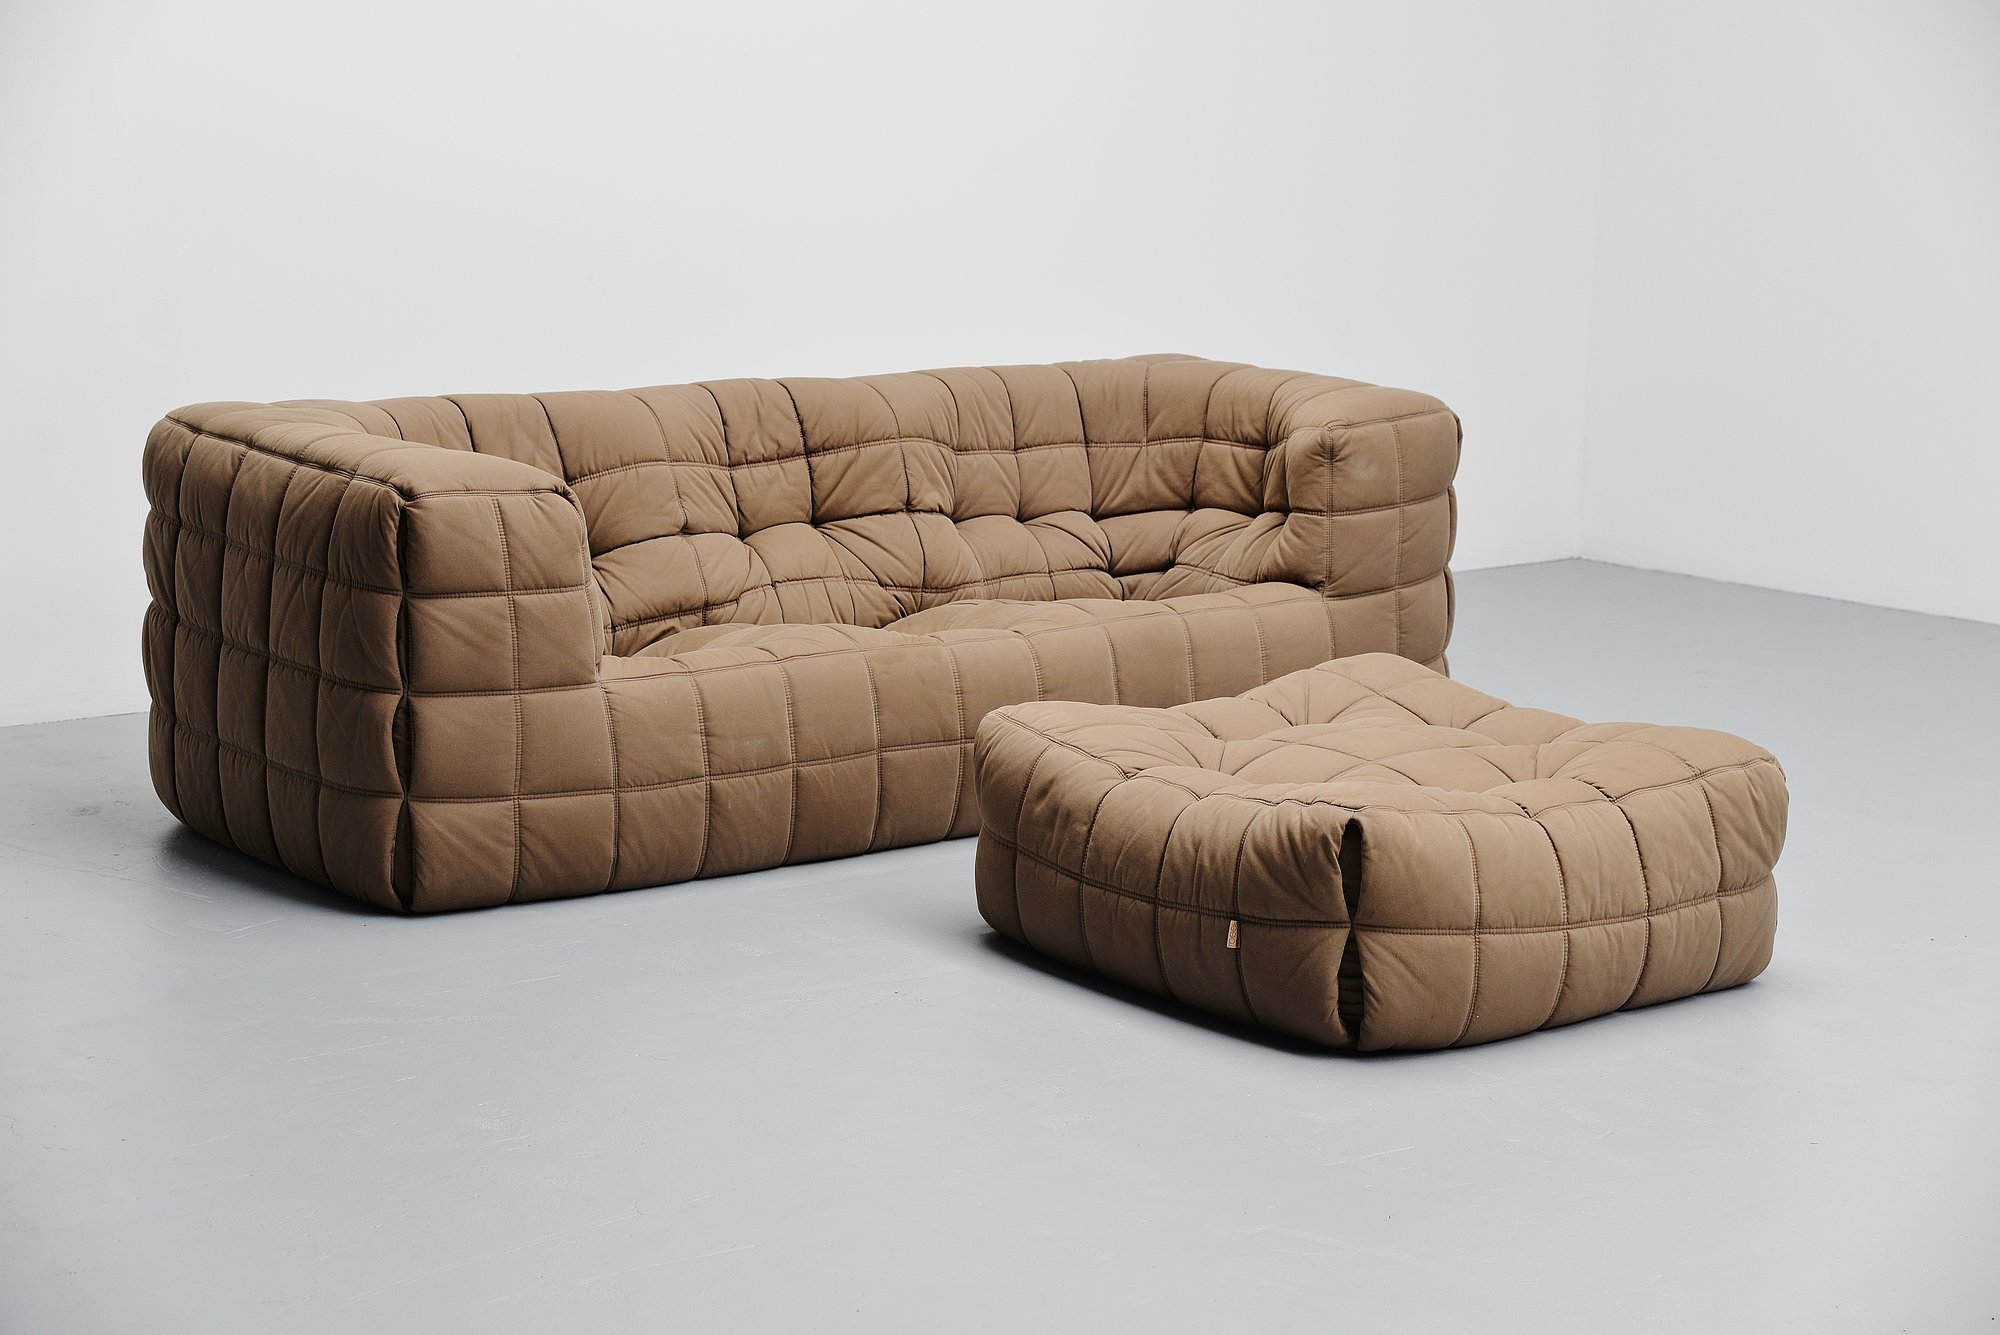 ligne roset kashima sofa michel ducaroy 1976 togo massmoderndesign. Black Bedroom Furniture Sets. Home Design Ideas